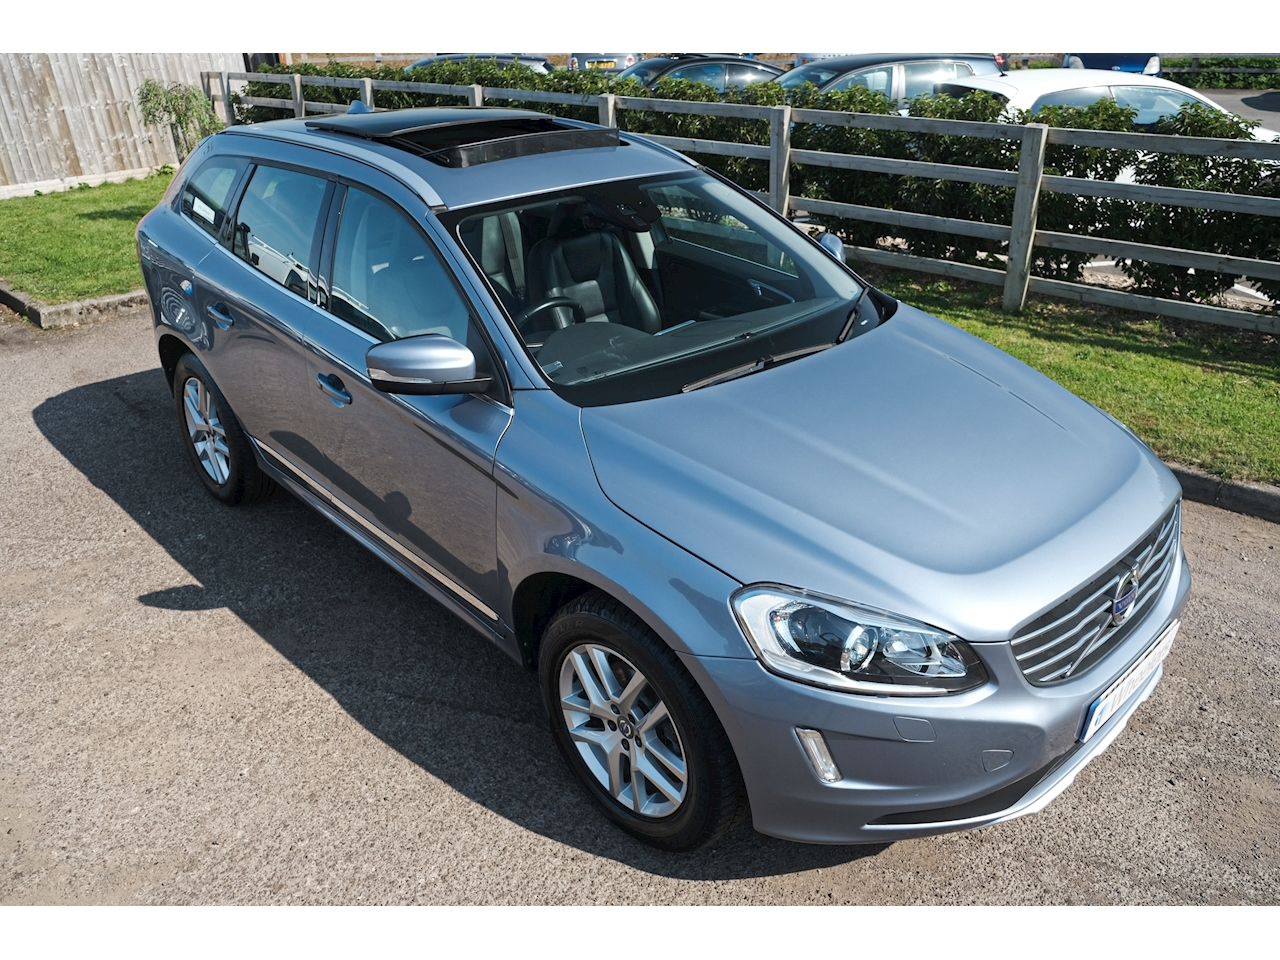 Volvo Xc60 D5 Se Lux Nav Awd Estate 2.4 Automatic Diesel